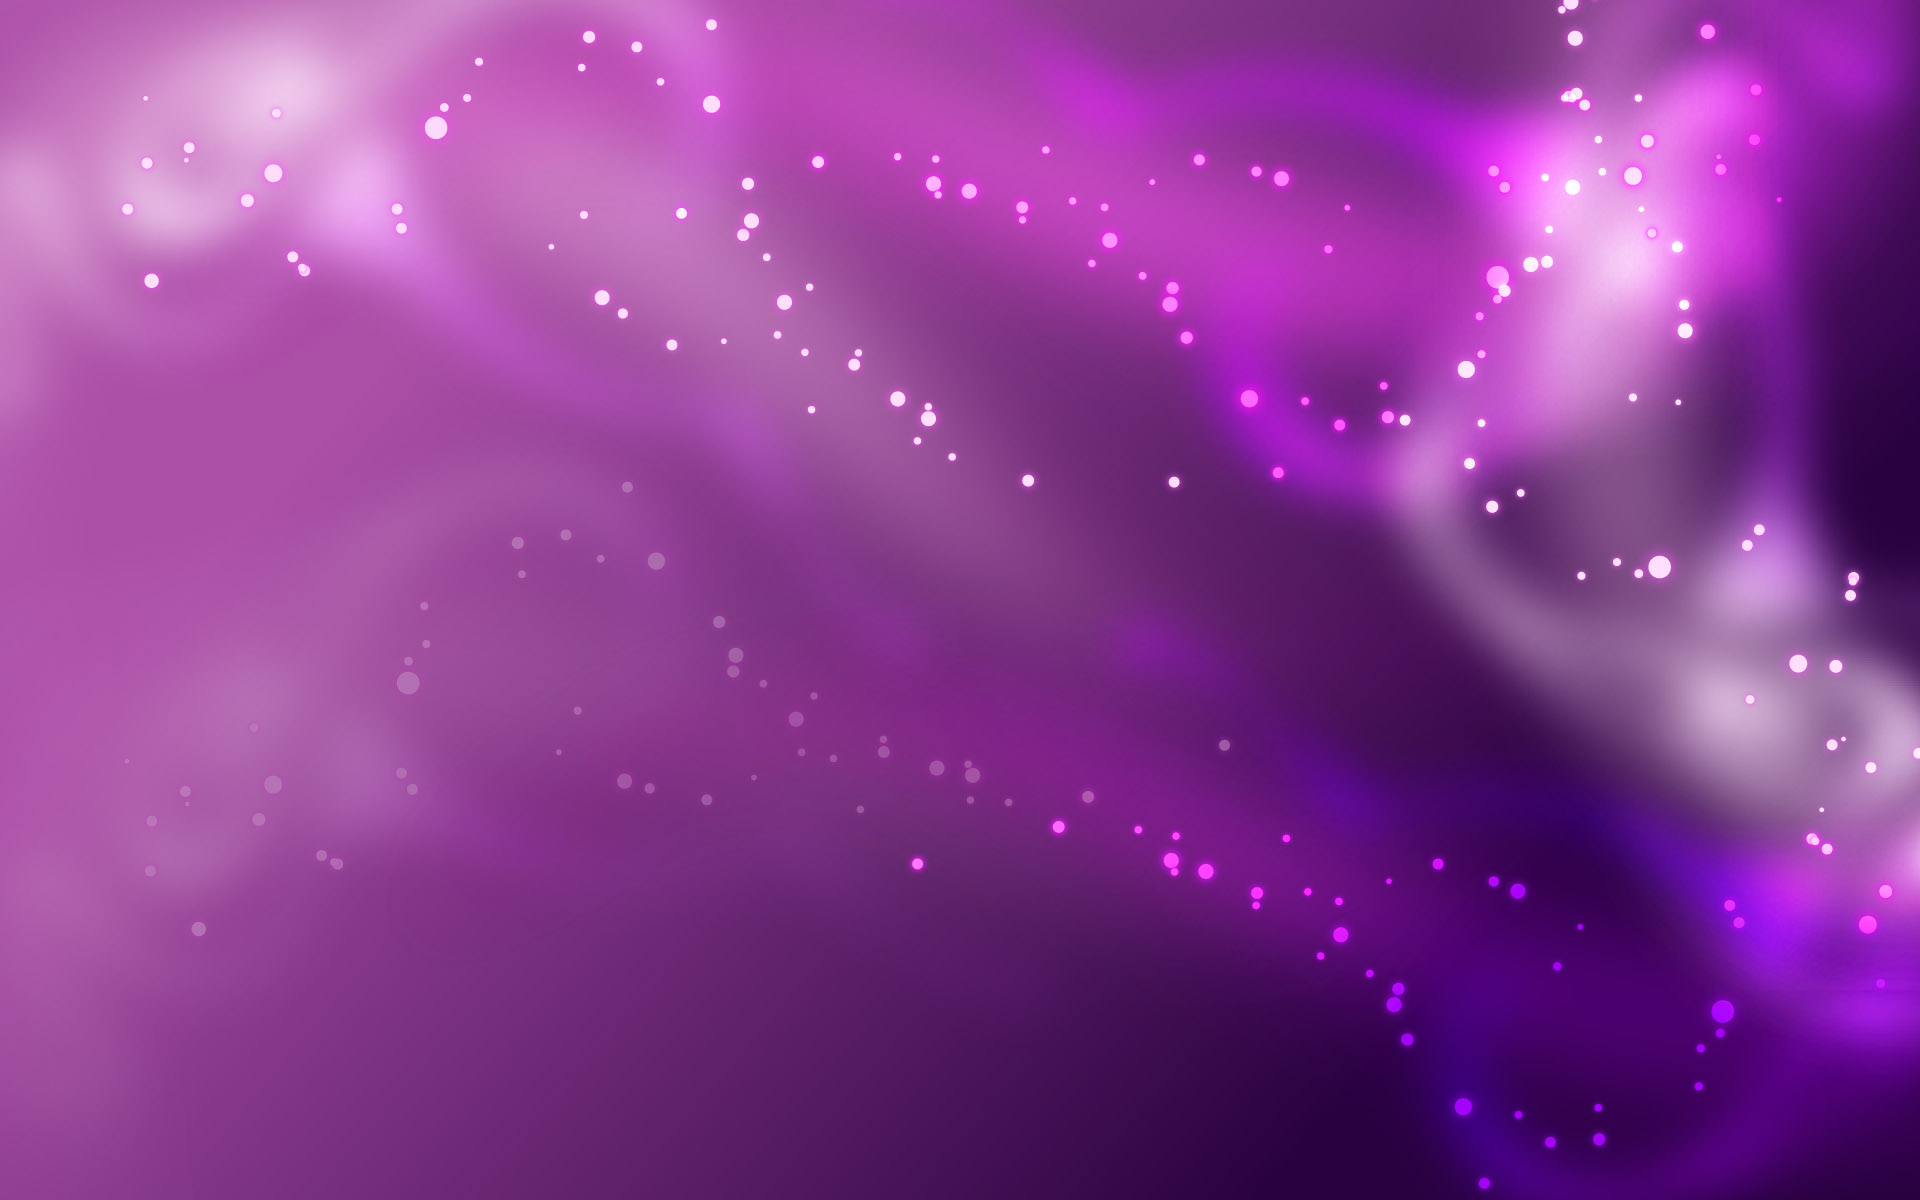 purple-colorful-backgrounds-powerpoint-templates